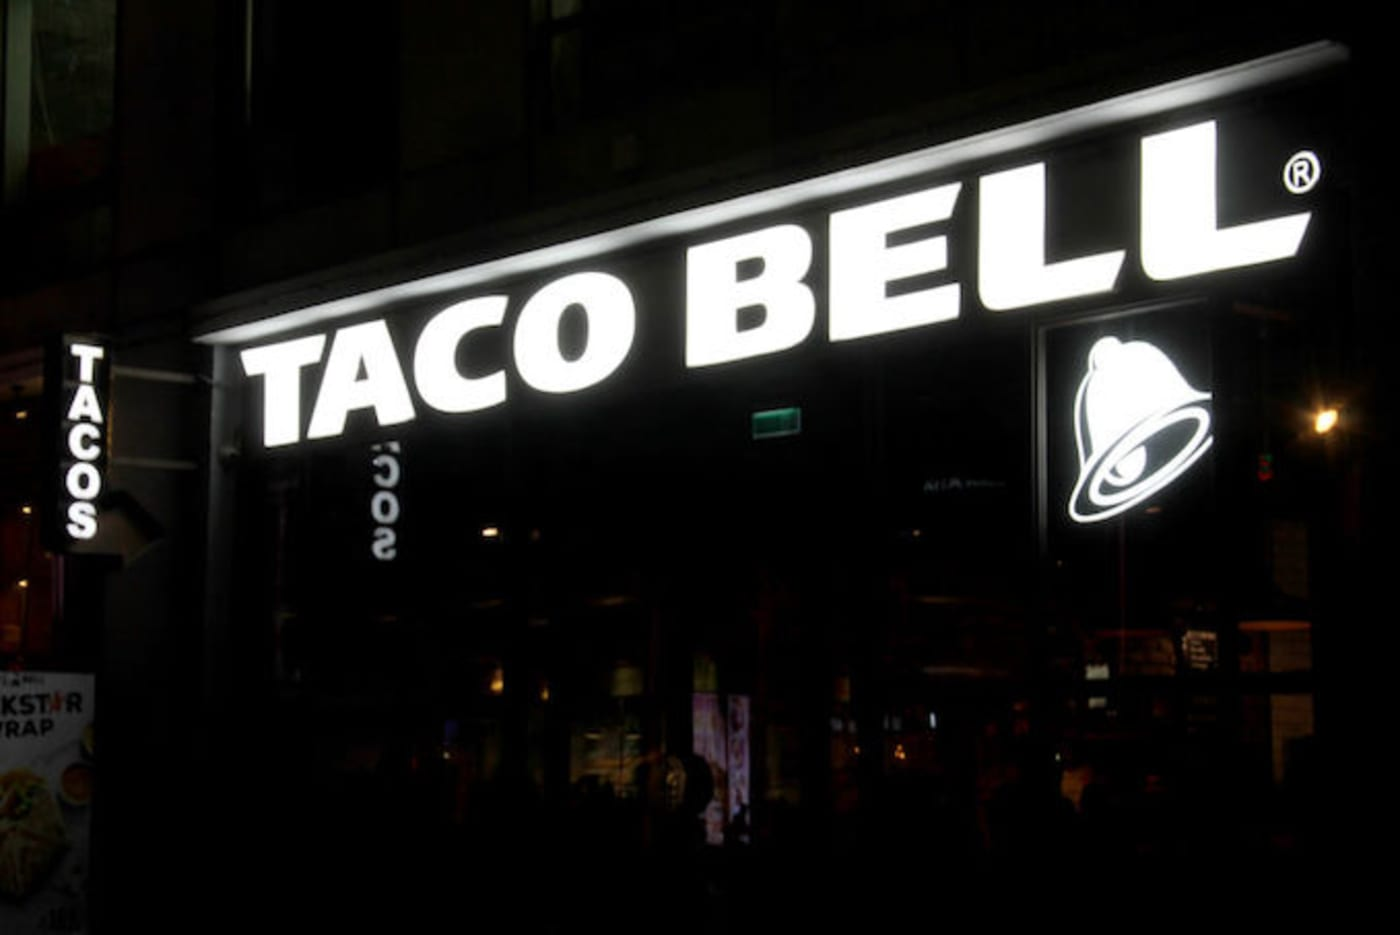 taco bell hotel